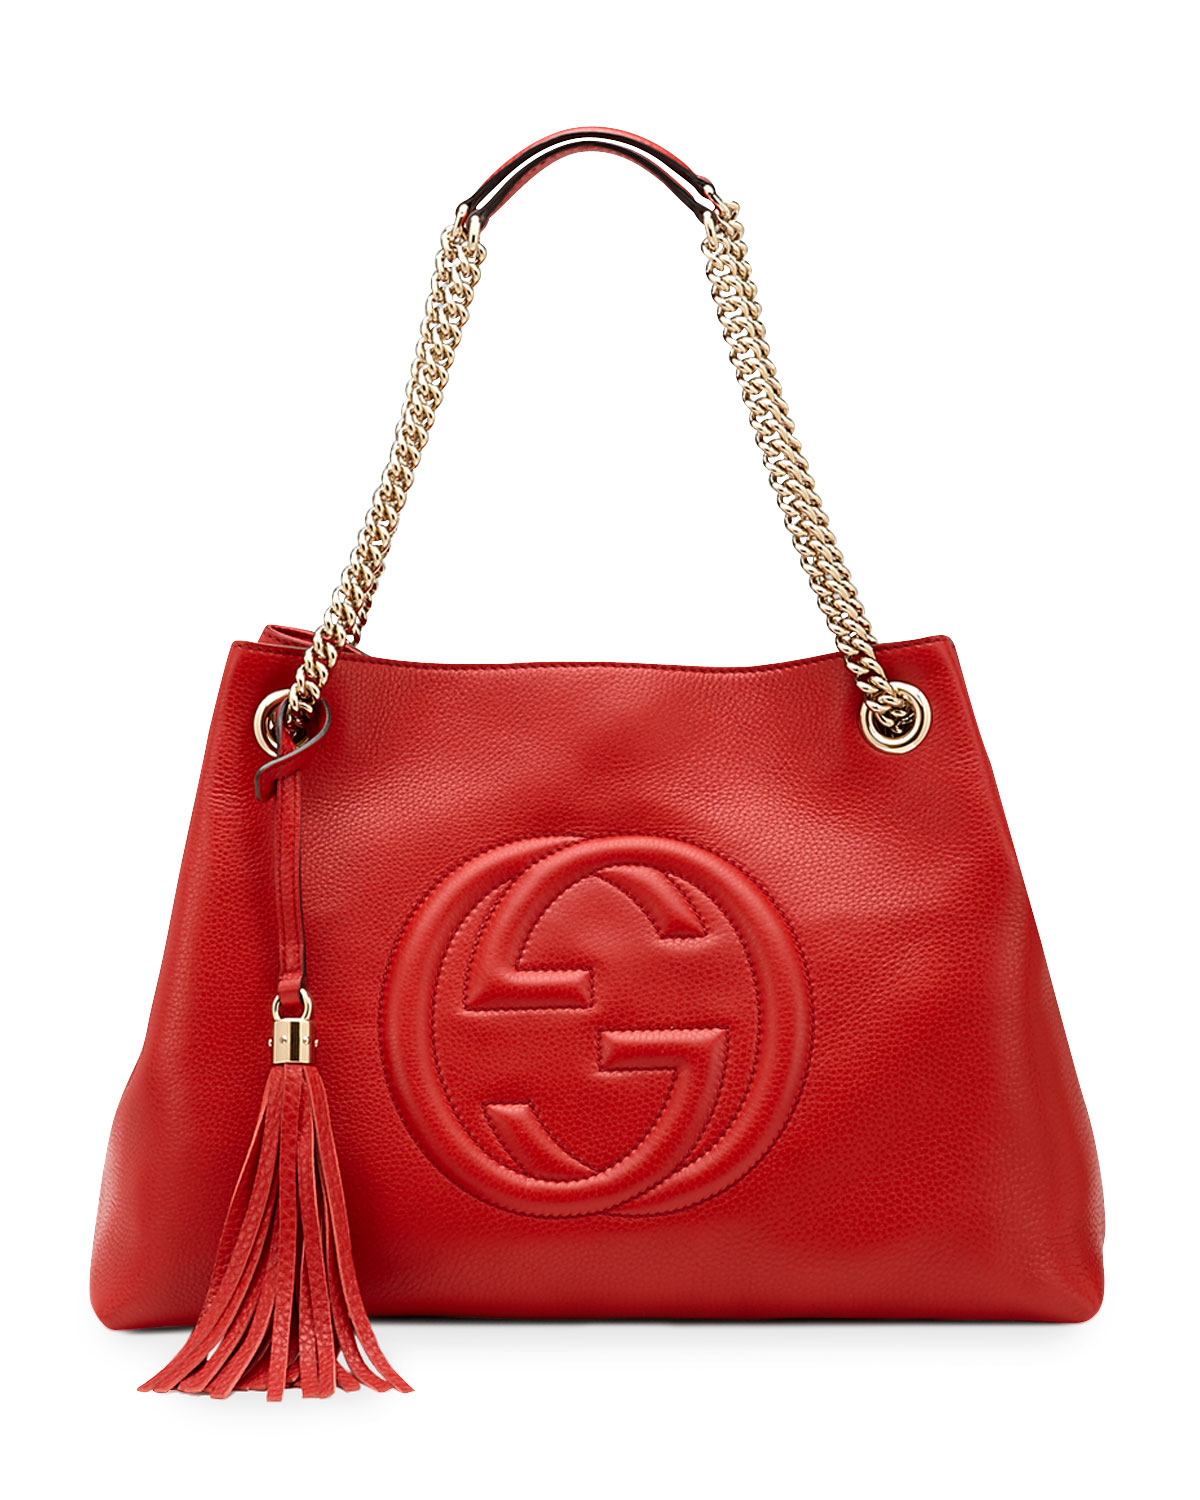 777dc205ec Gucci Soho Leather Medium Chain-Strap Tote, Red | Neiman Marcus